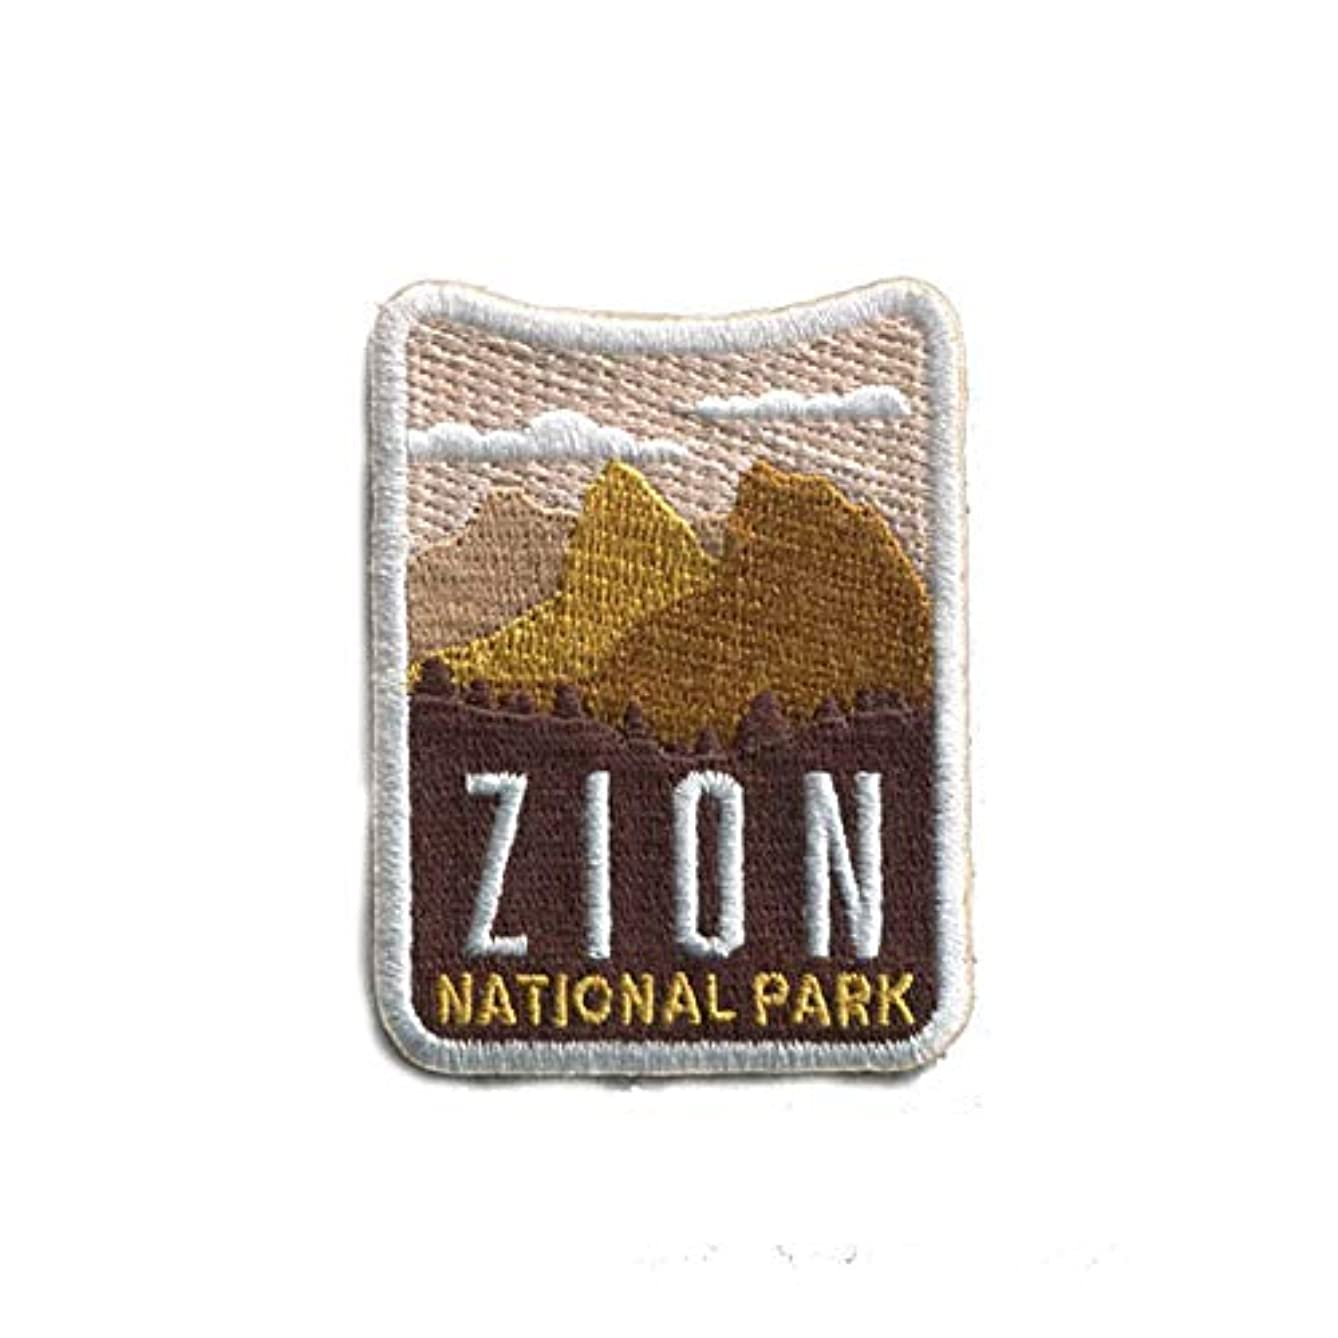 Zion National Park Iron On Patch